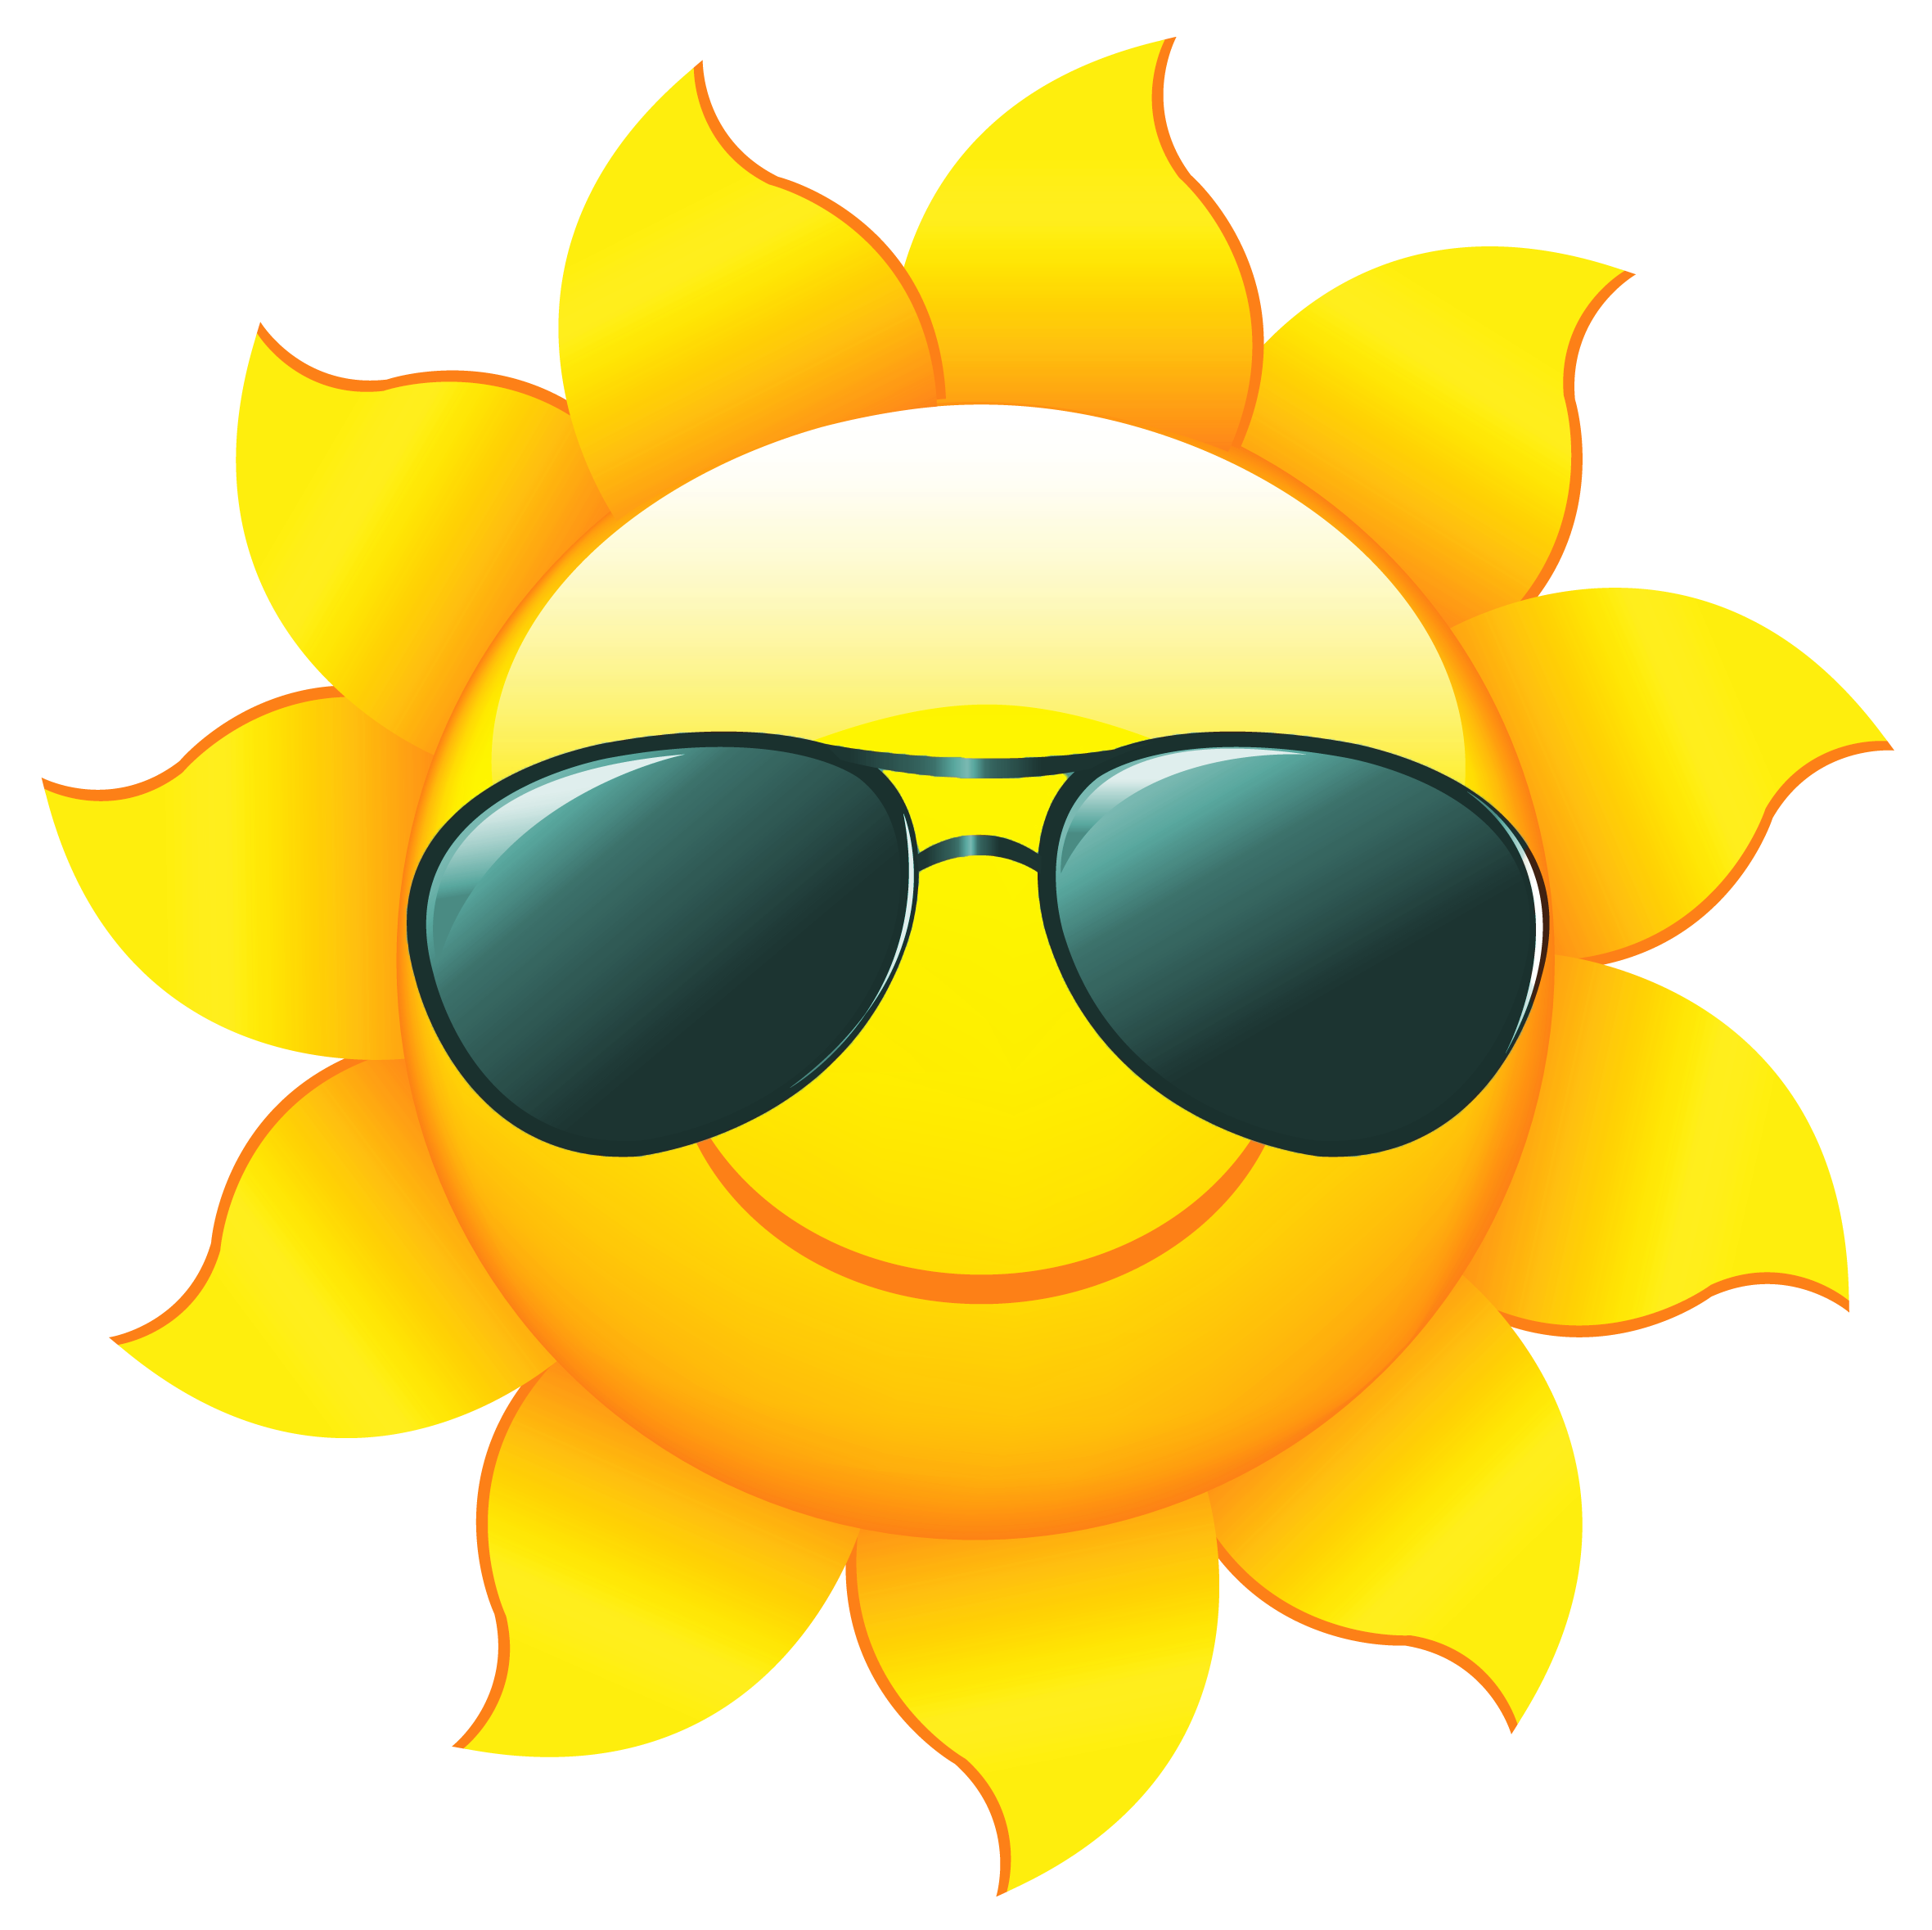 Image of sun clipart image library library 28+ Collection of Midday Sun Clipart | High quality, free cliparts ... image library library